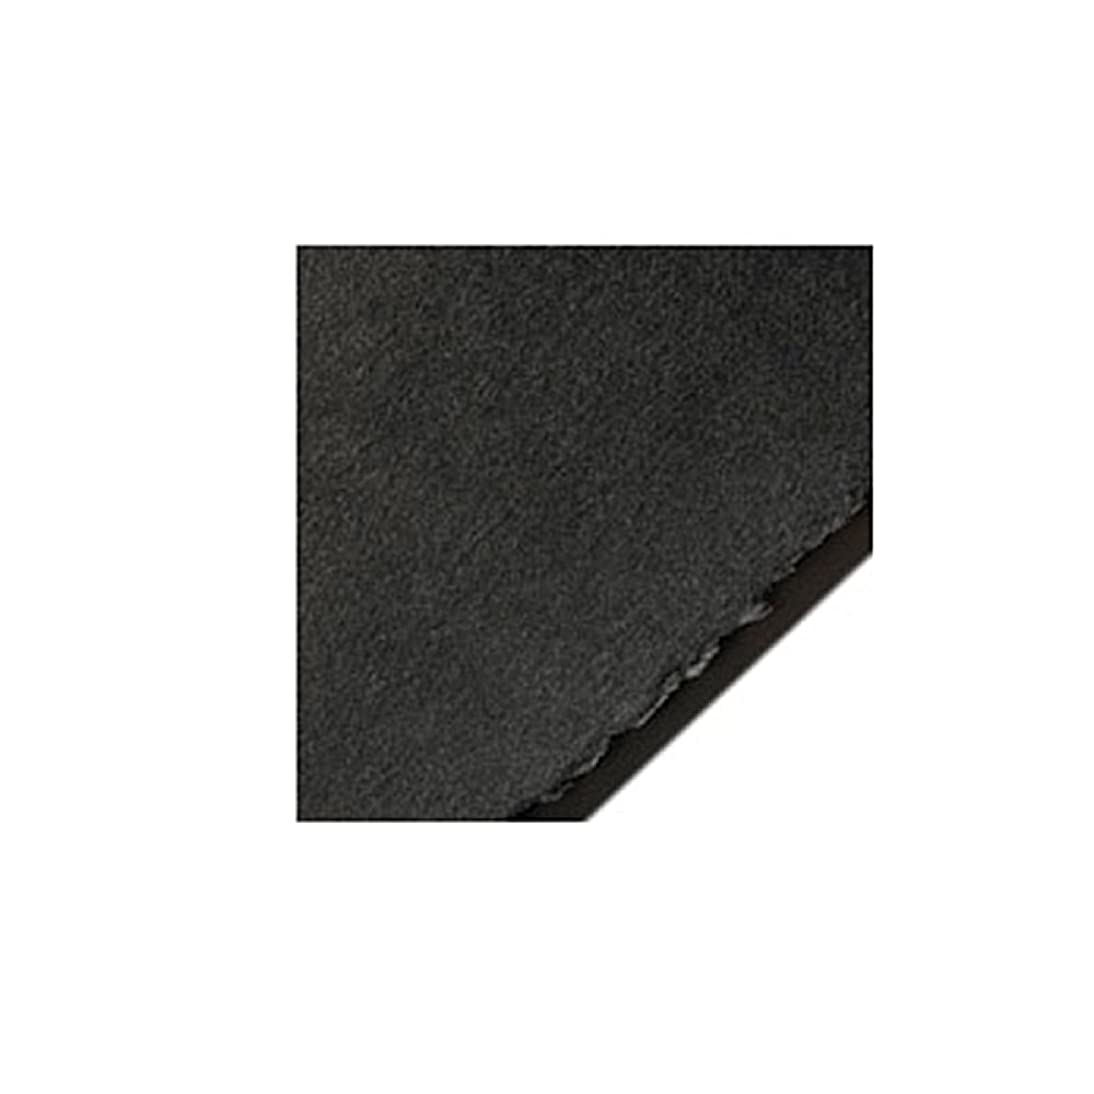 Legion Stonehenge Paper, Cotton Deckle Edge Sheets, 22 X 30 inches, Black, Pack of 25 (F05-403160)